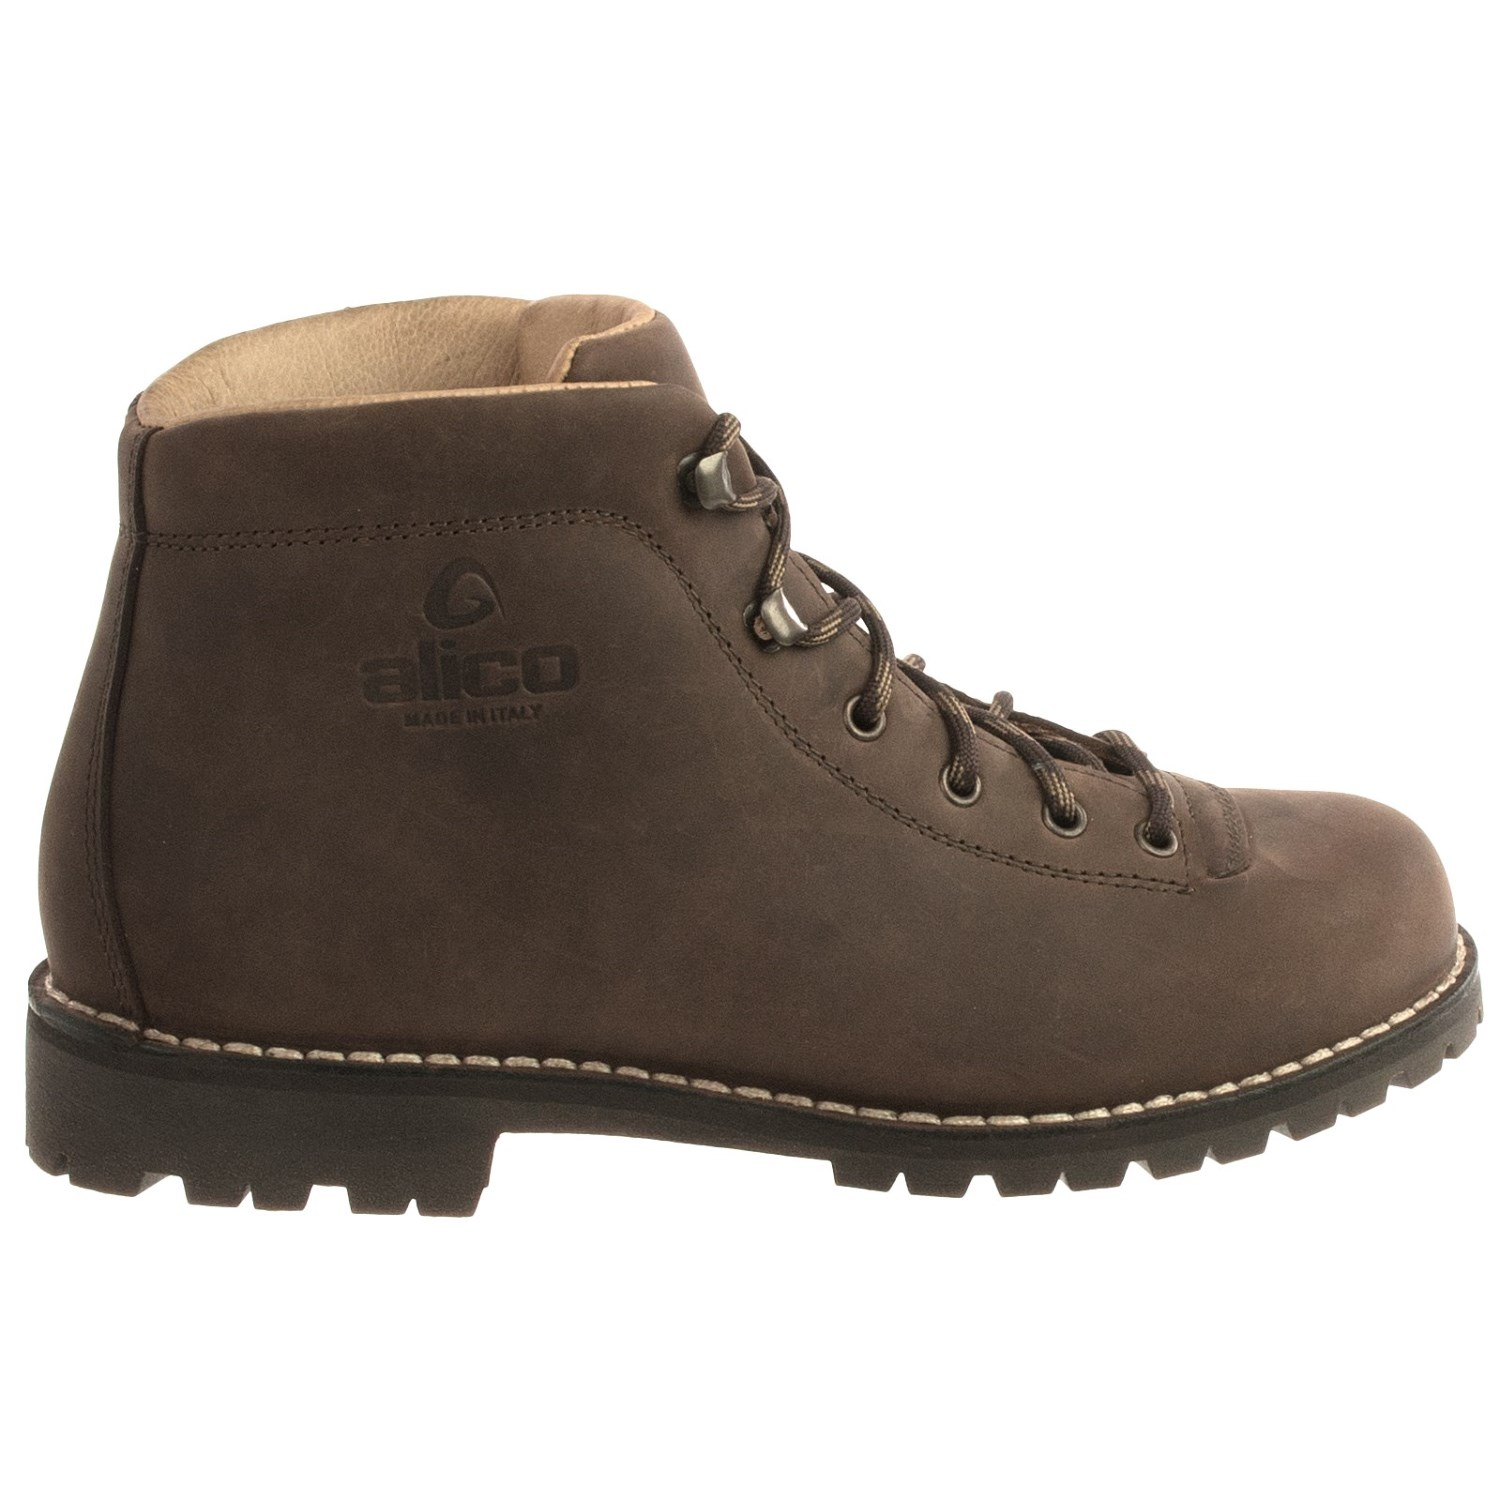 9d1257fb8757 Alico Made in Italy Belluno Hiking Boots (For Men) - Save 60%